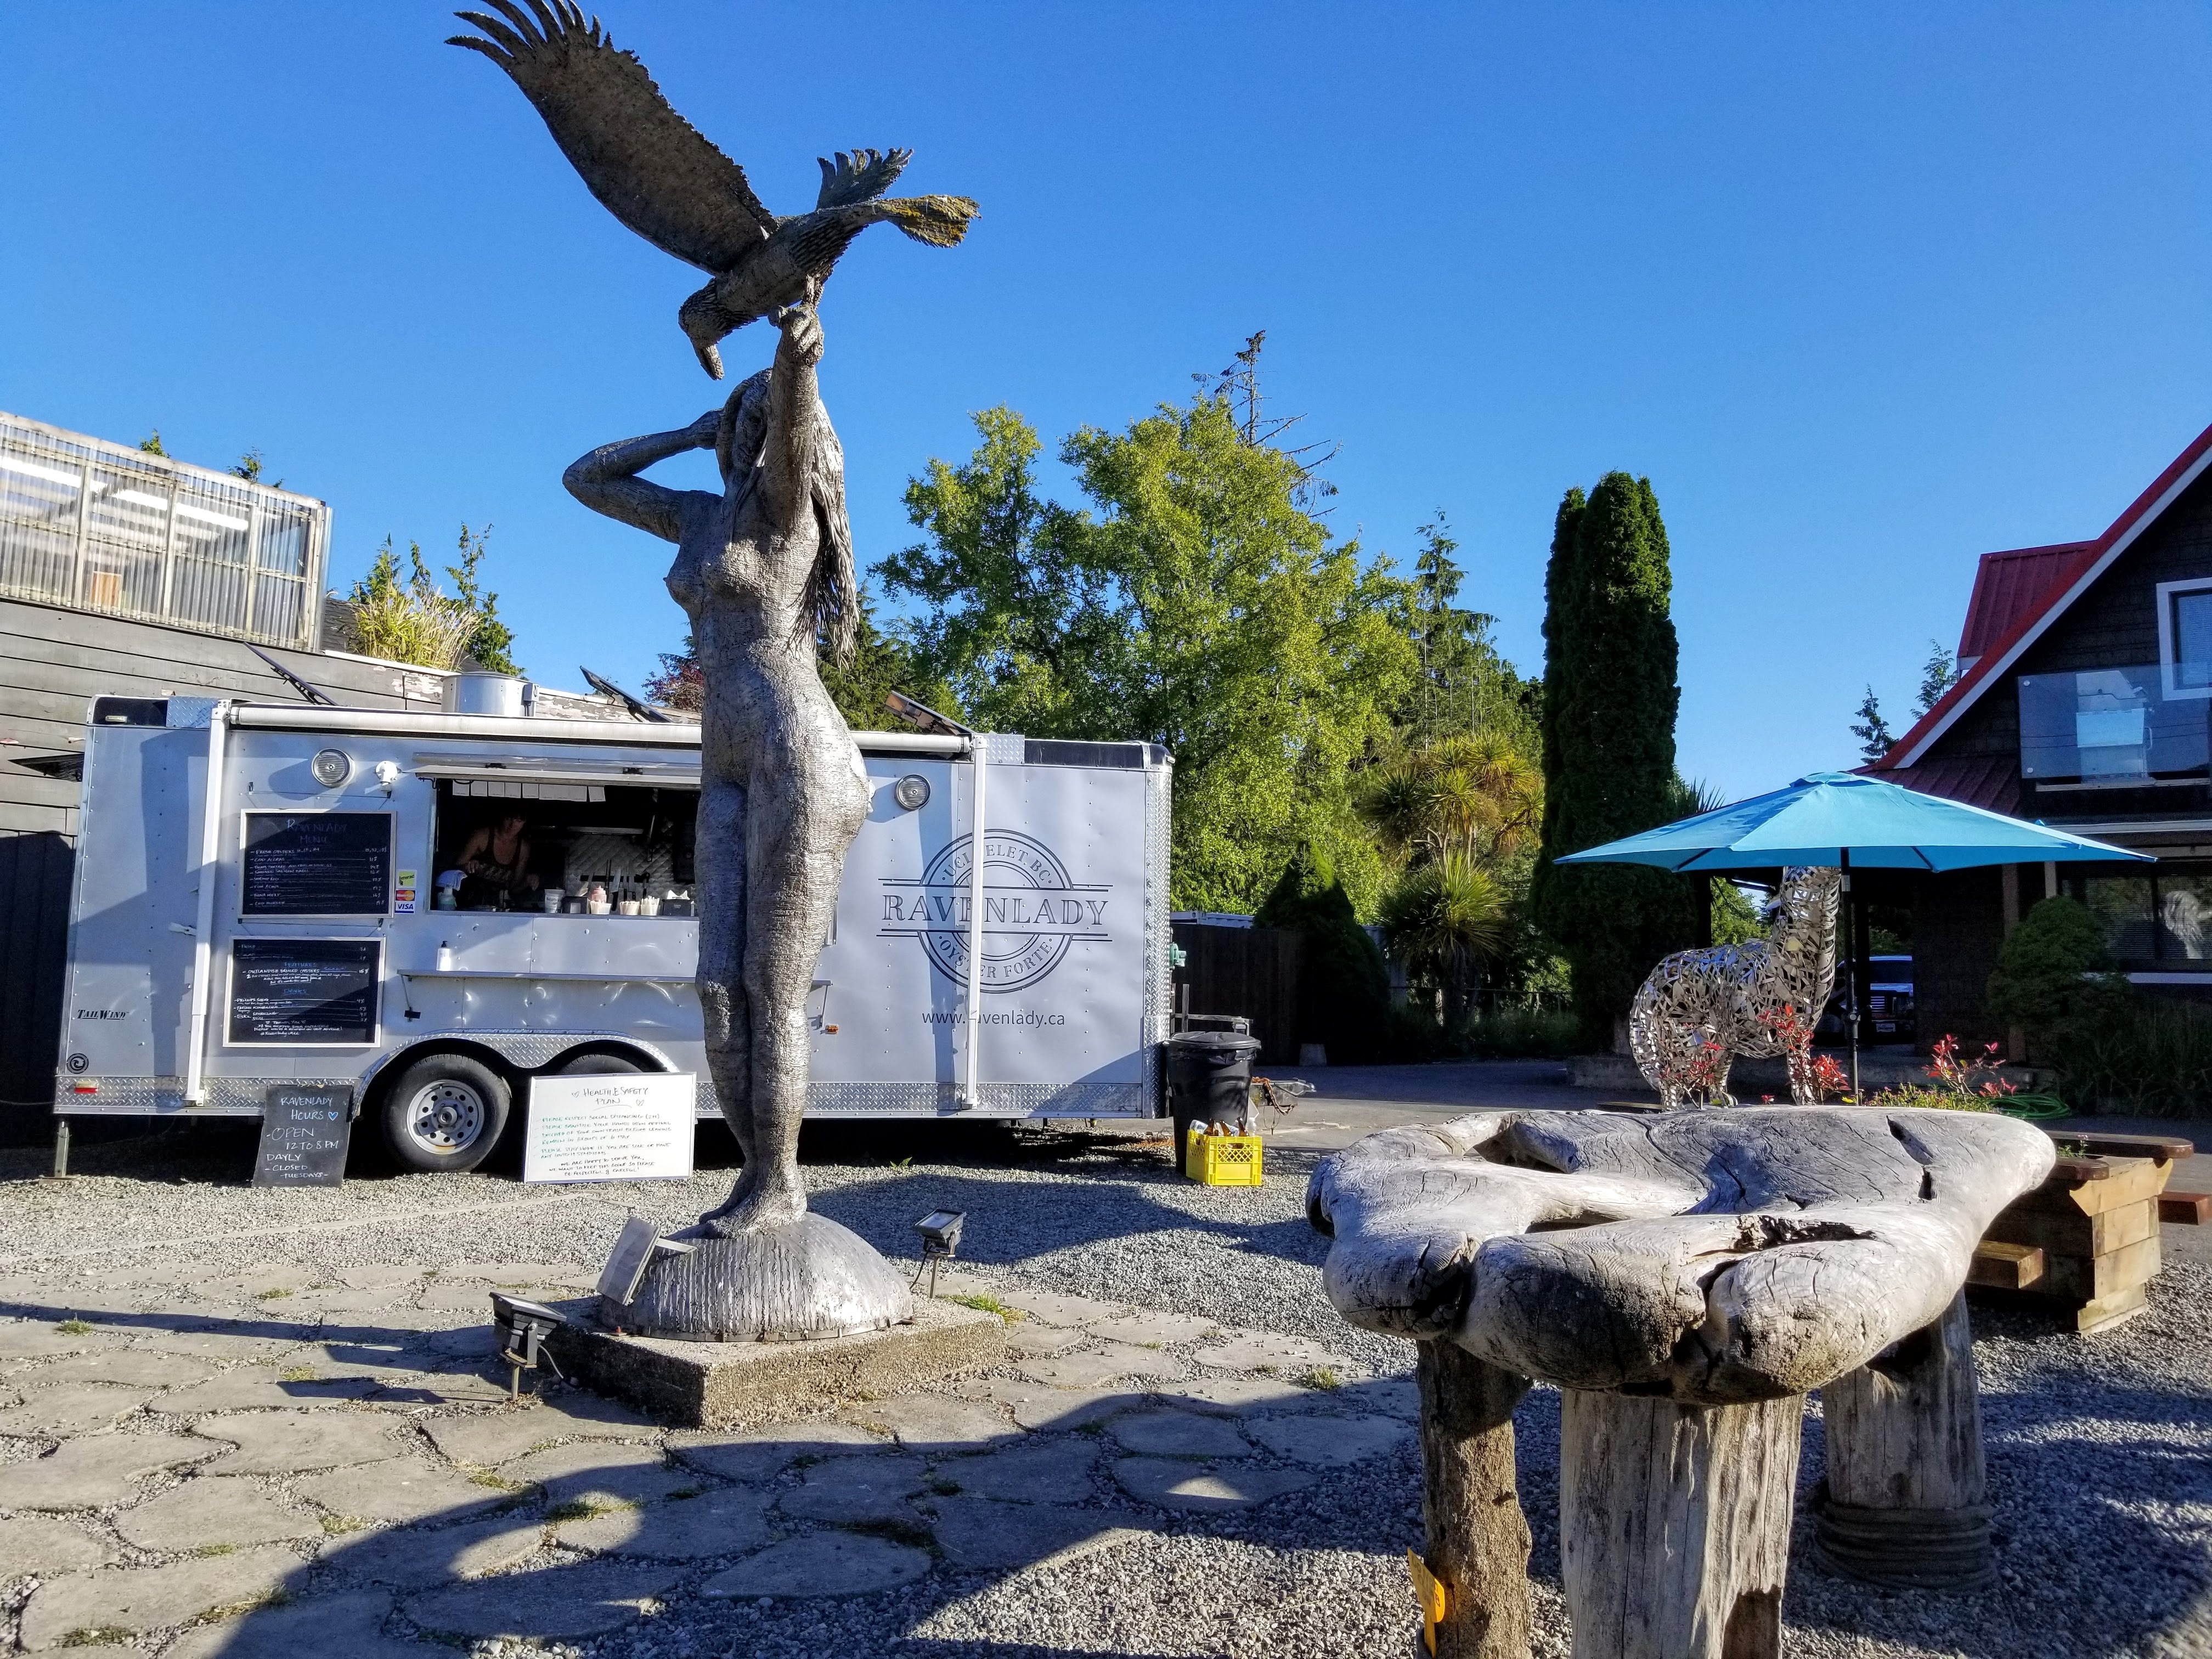 The Raven Lady Food Truck that serves up gourmet seafood